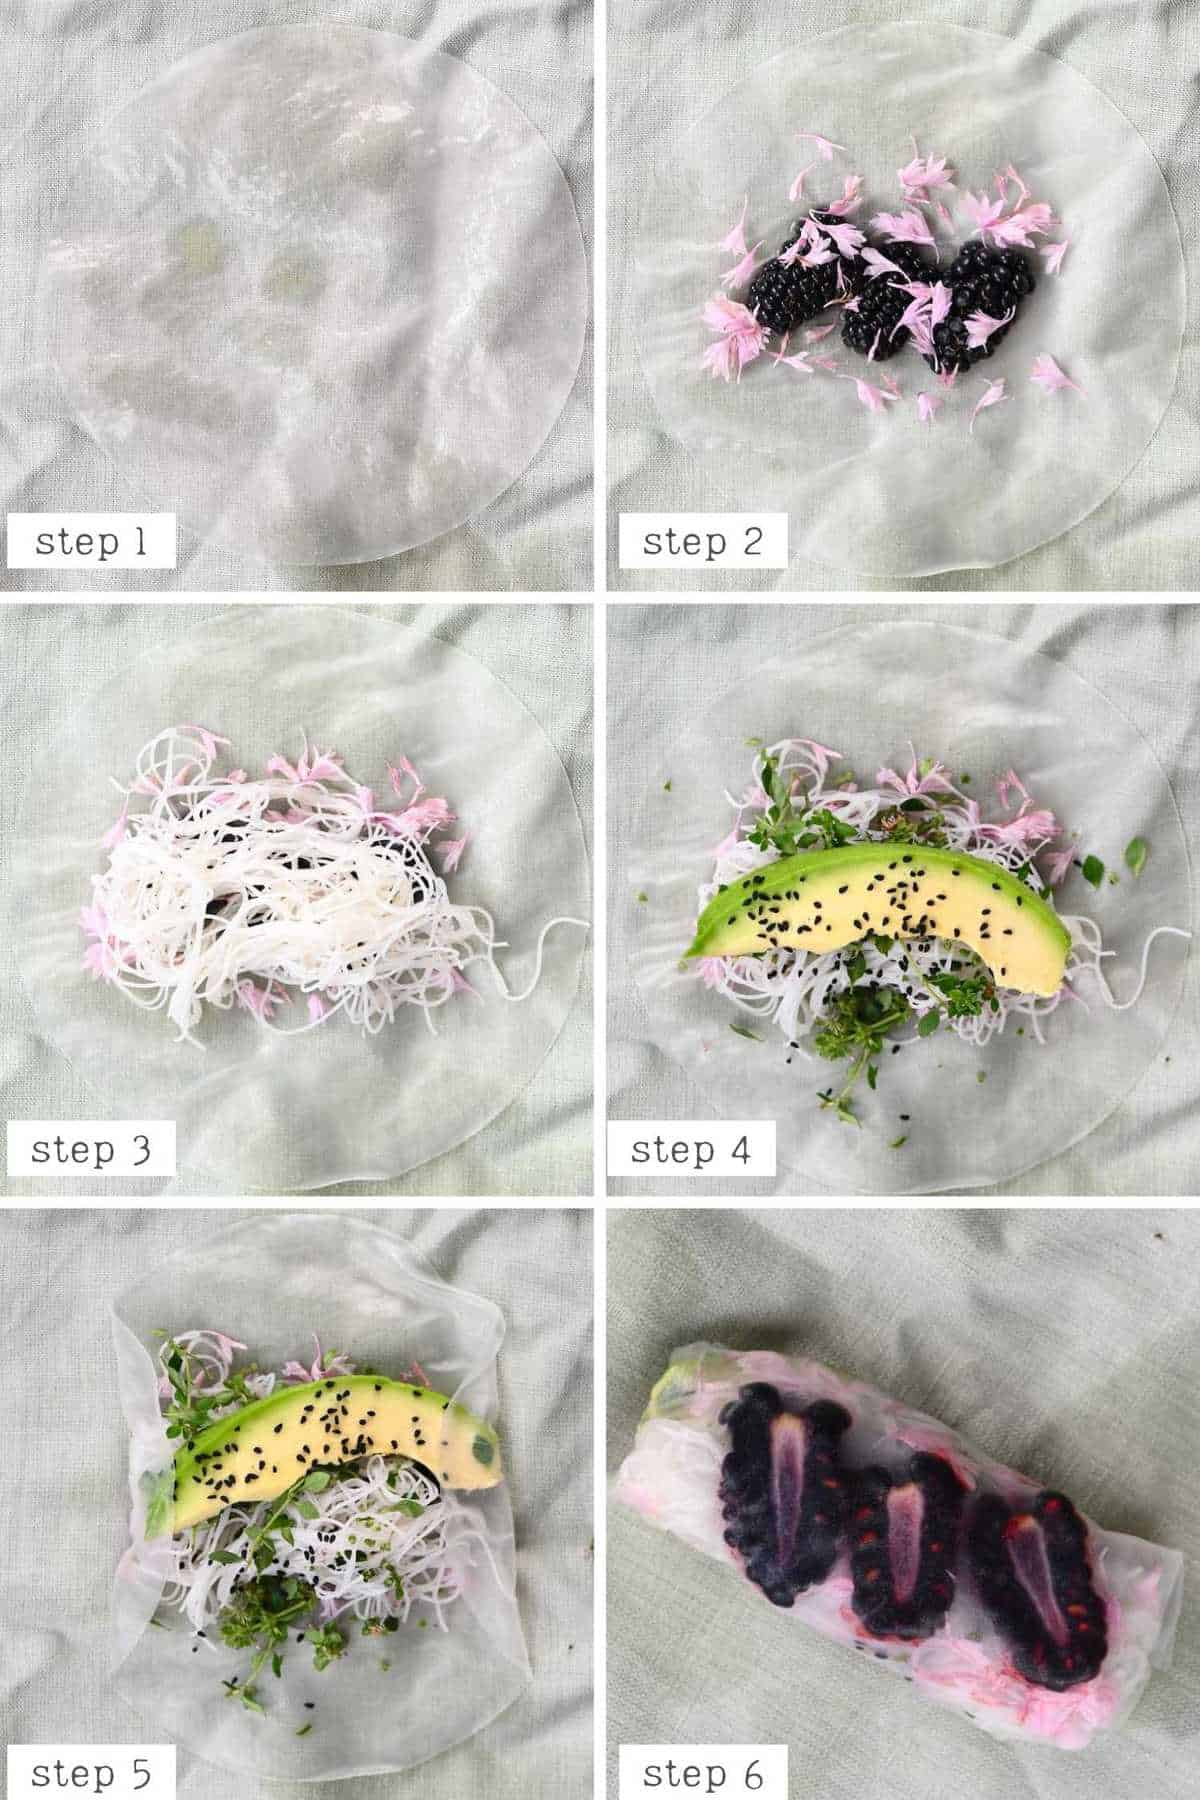 steps for making blackberry rice paper roll